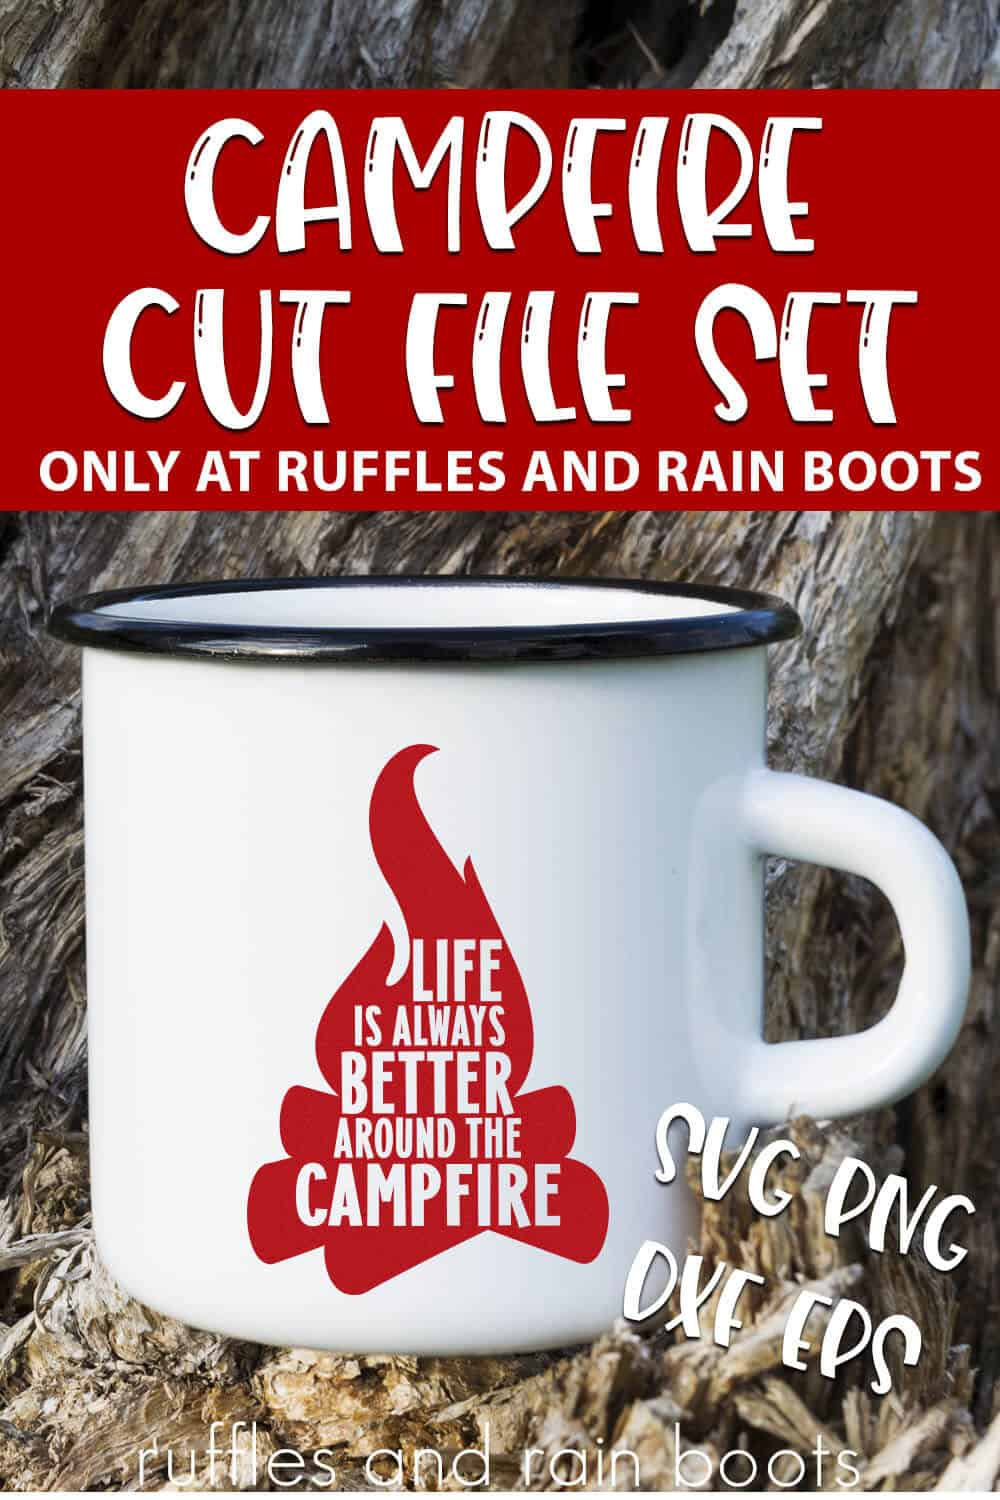 Life is Better Around the Campfire SVG For cricut or silhouette with text which reads campfire cut file set svg png dxf eps